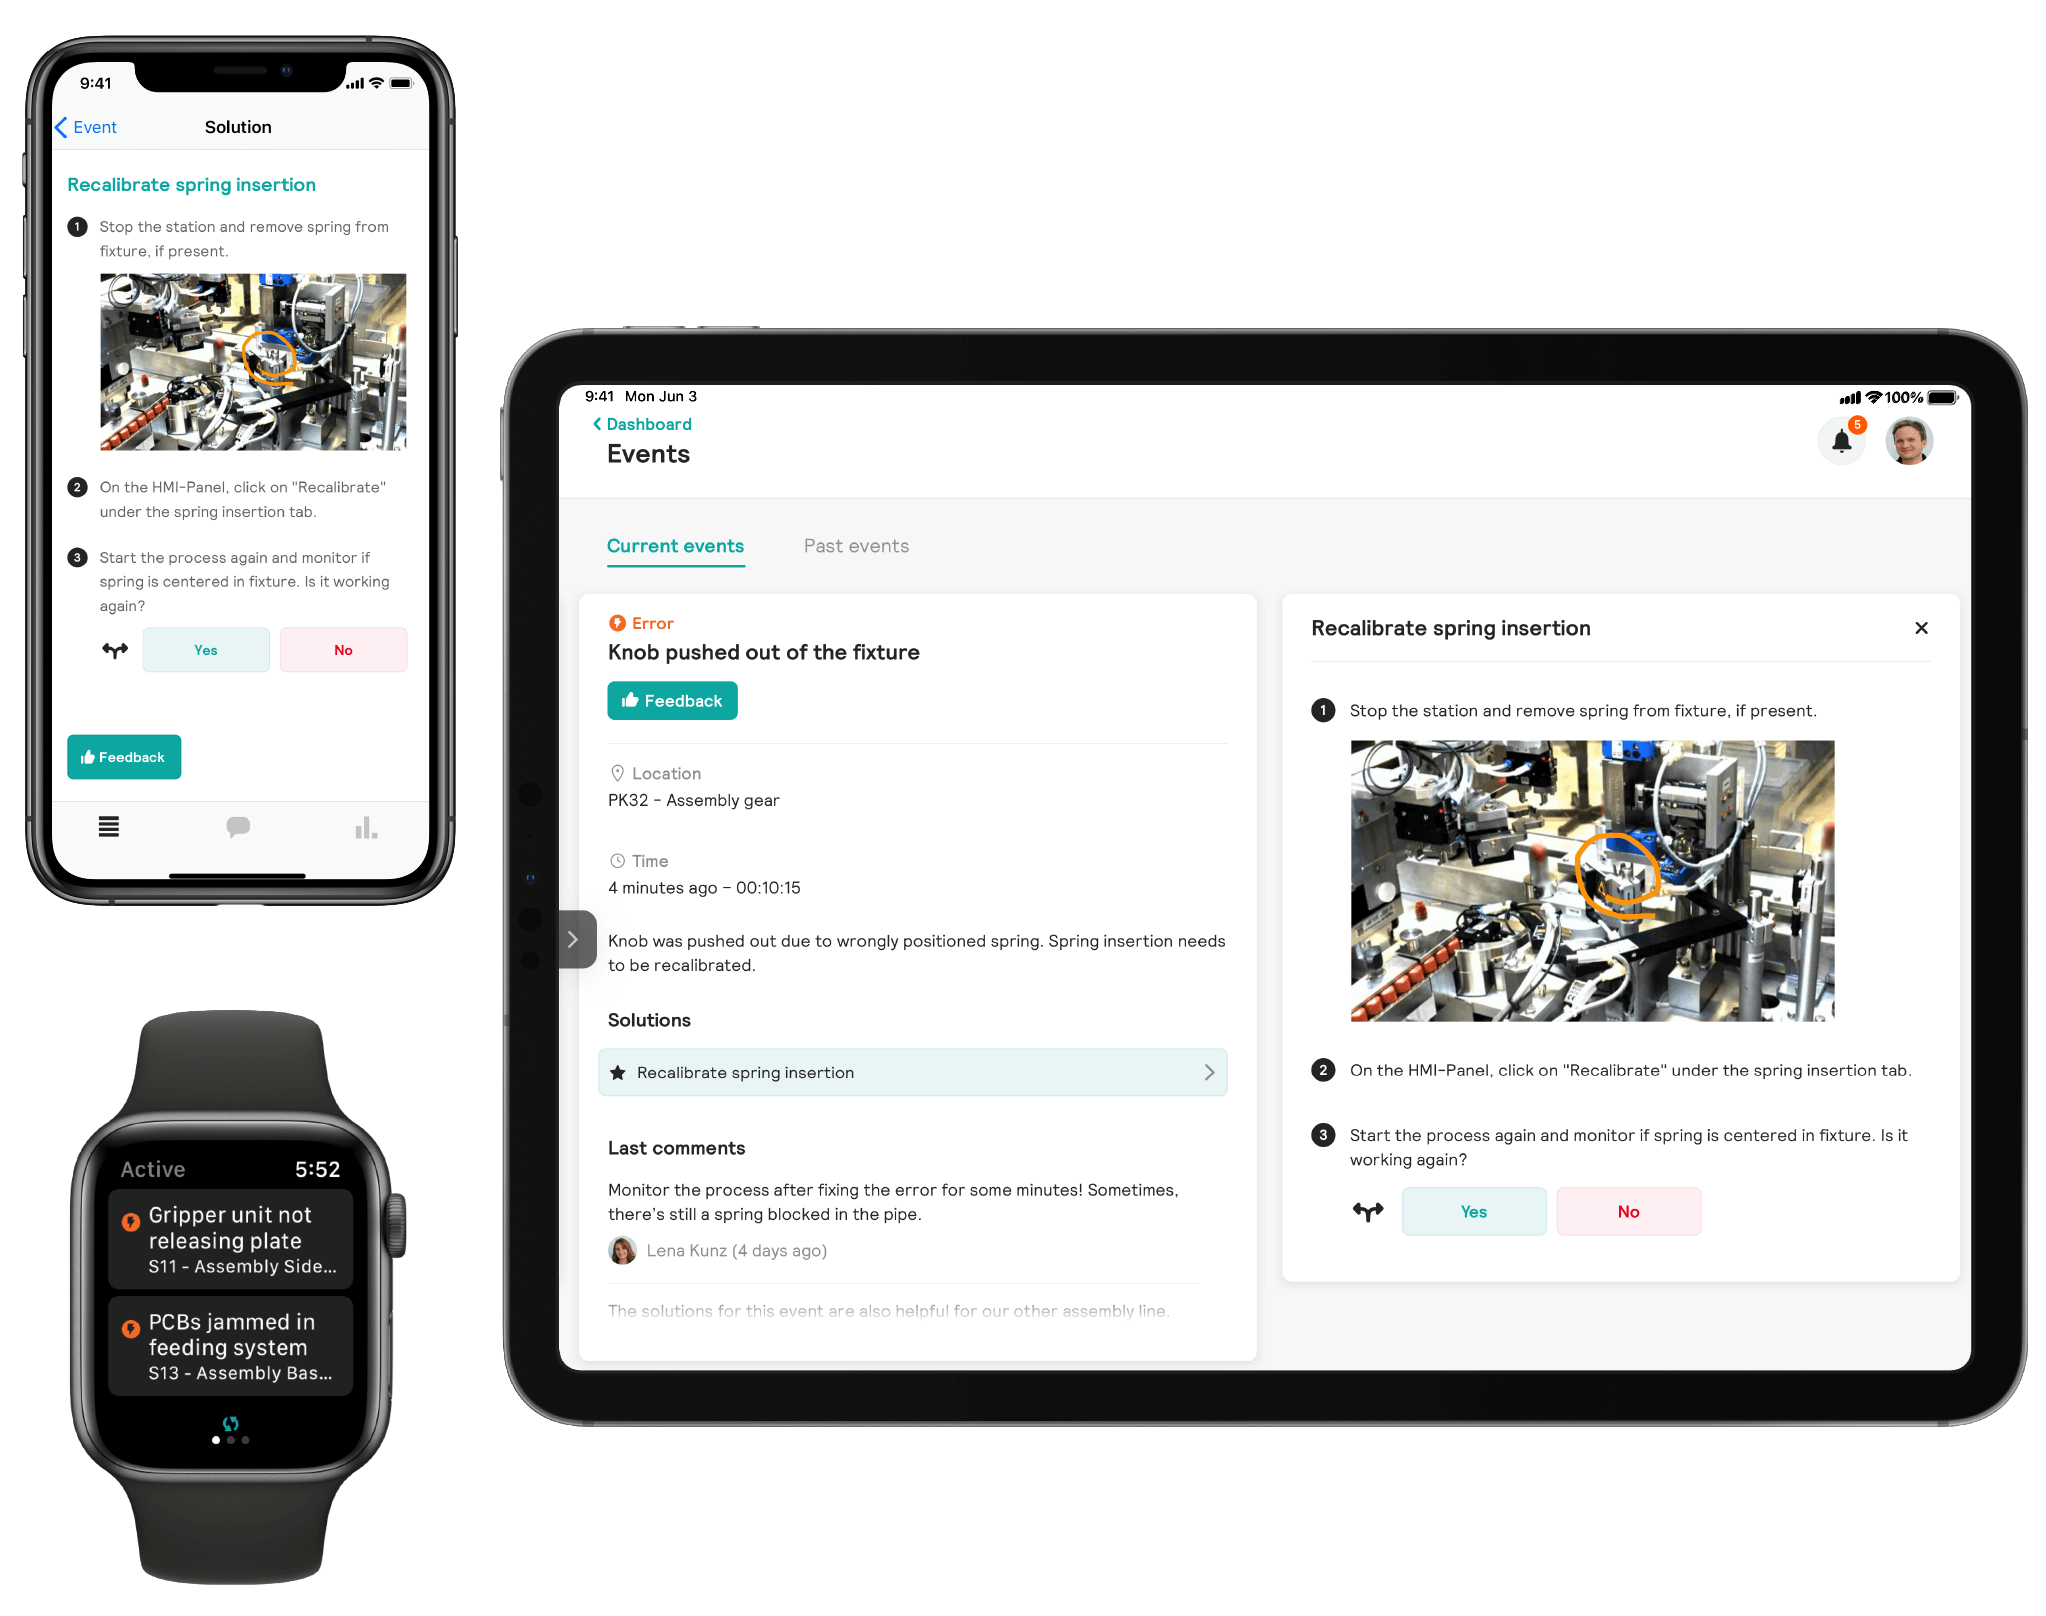 Ipad, Iphone and Smartwatch with Shannon application